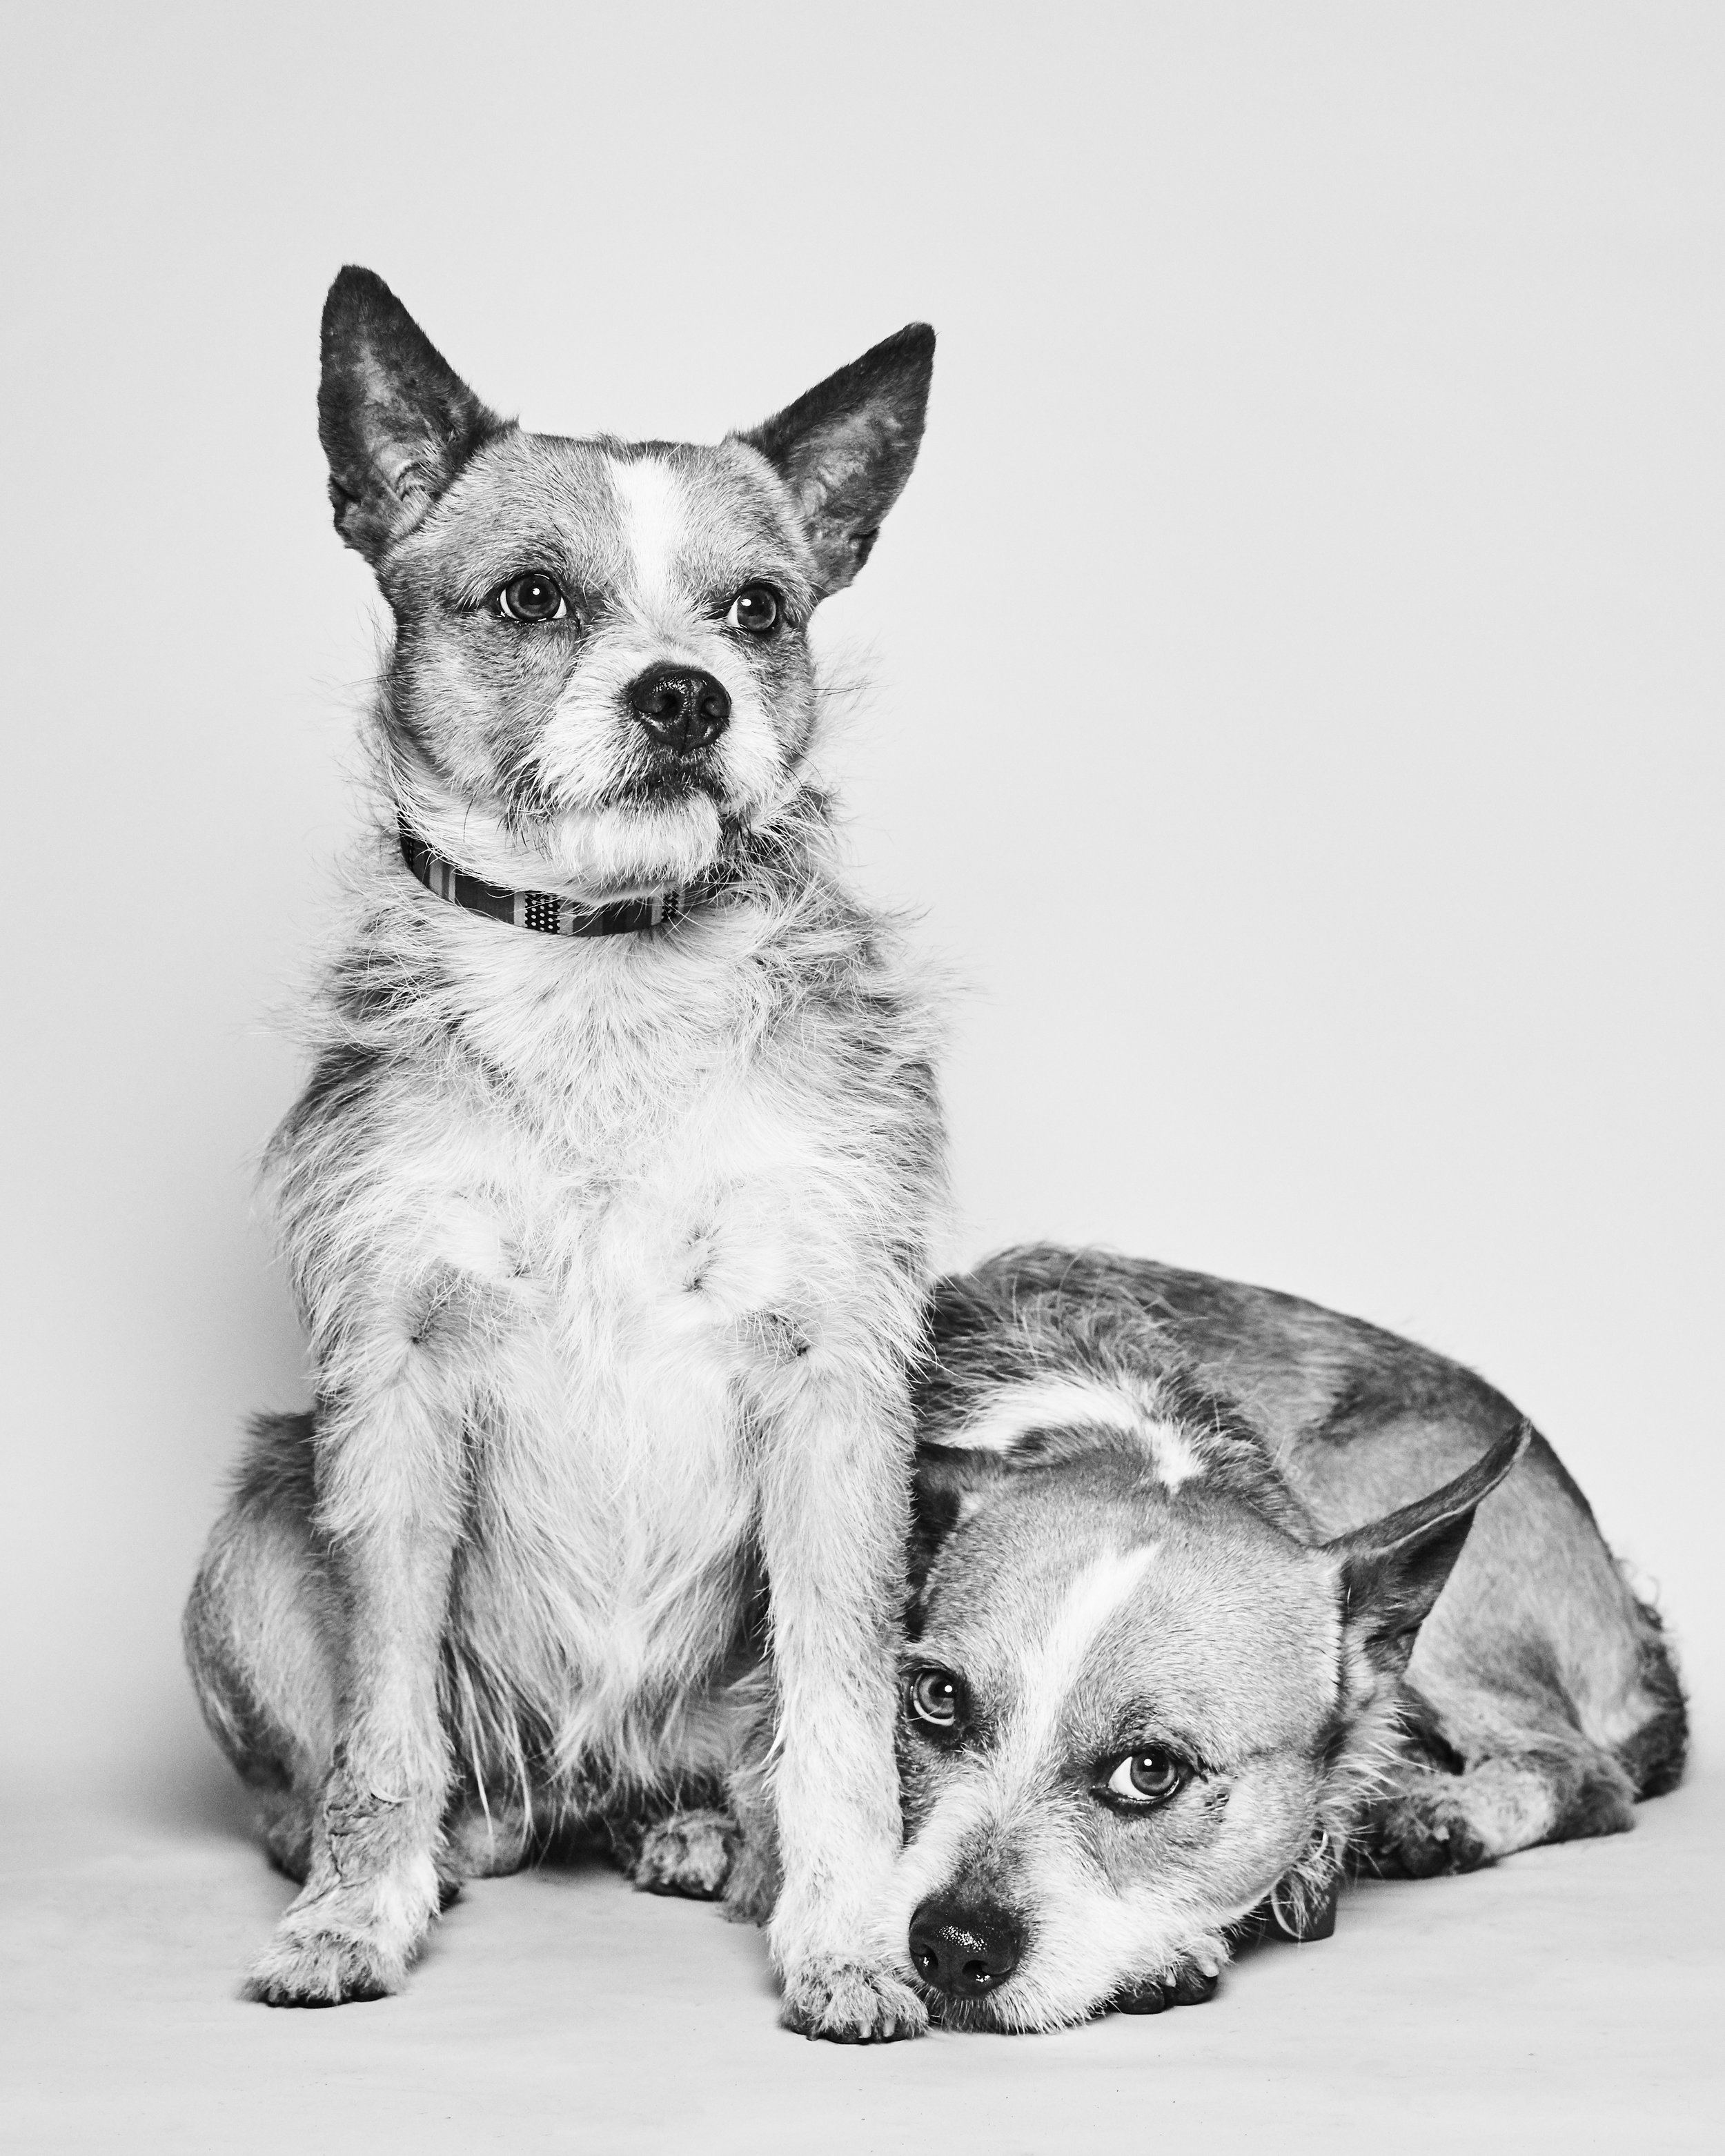 These boys are quite the odd couple! We believe them to be some sort of Corgi/Border Terrier mix and they're roughly 2 years old. We don't know but they're completely bonded. Both are super friendly and have enjoyed going through formal training to learn proper leash manners and house manners. We are looking for a home where these two boys can live together and dazzle their people with their adorable comedy routine. And haven't you always wanted a dog named Bacon??